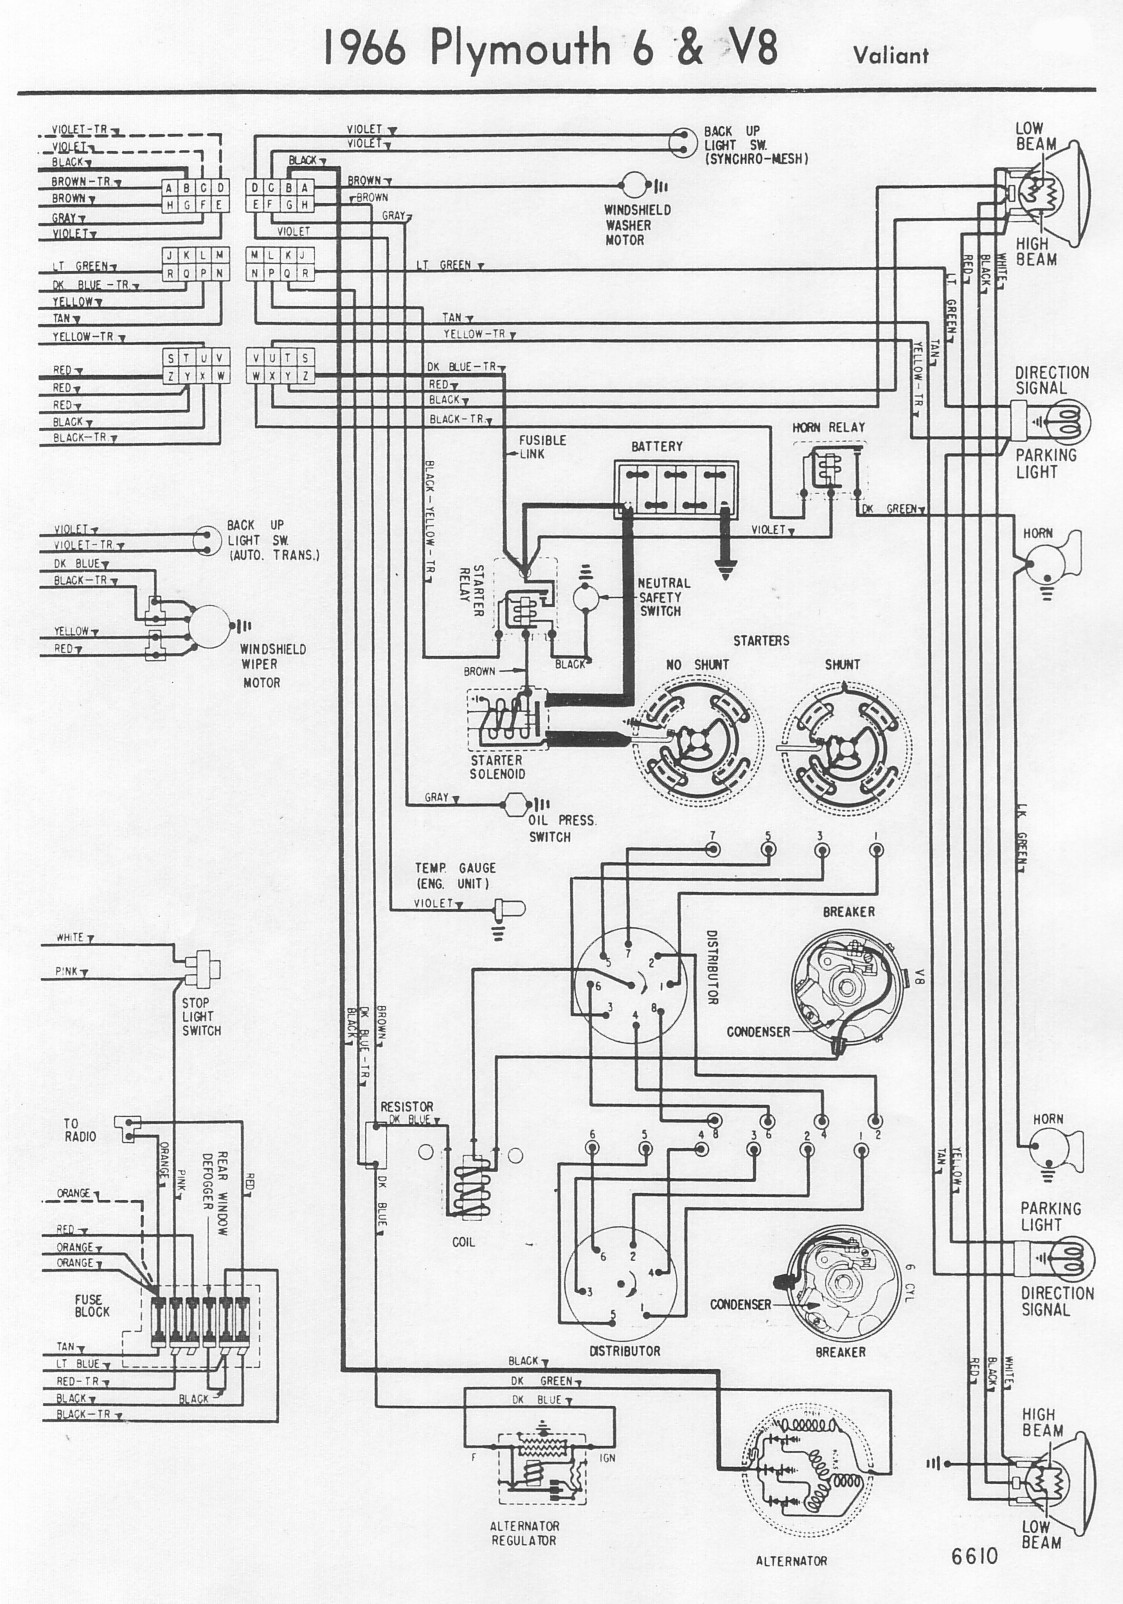 Black 71 Chevelle Ss Wiring Diagrams further Sus 209 as well Chevrolet Corvette Engine 1970 Schematic Diagram 61919 in addition Wallsearch furthermore T 82496. on 70 chevelle wiring harness diagram